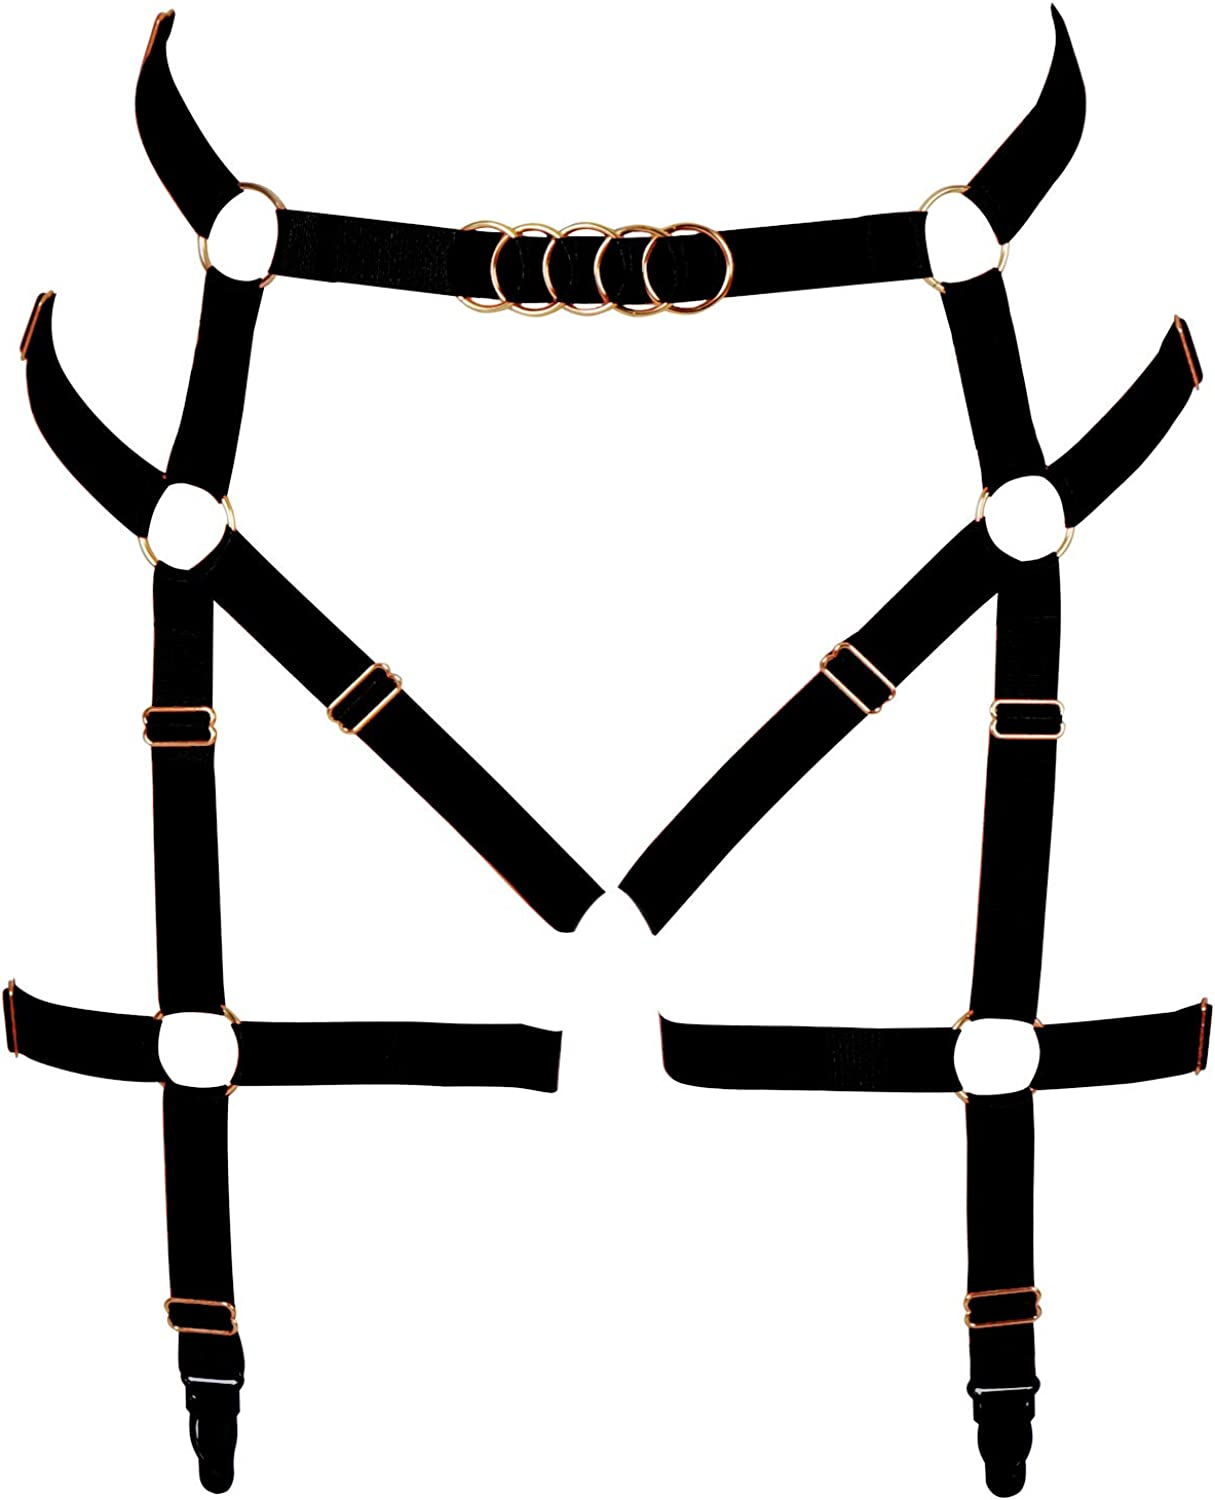 Women Leg Harness Garter Houston Mall Belt Adjust Strappy Free shipping on posting reviews Cage Thigh Elastic